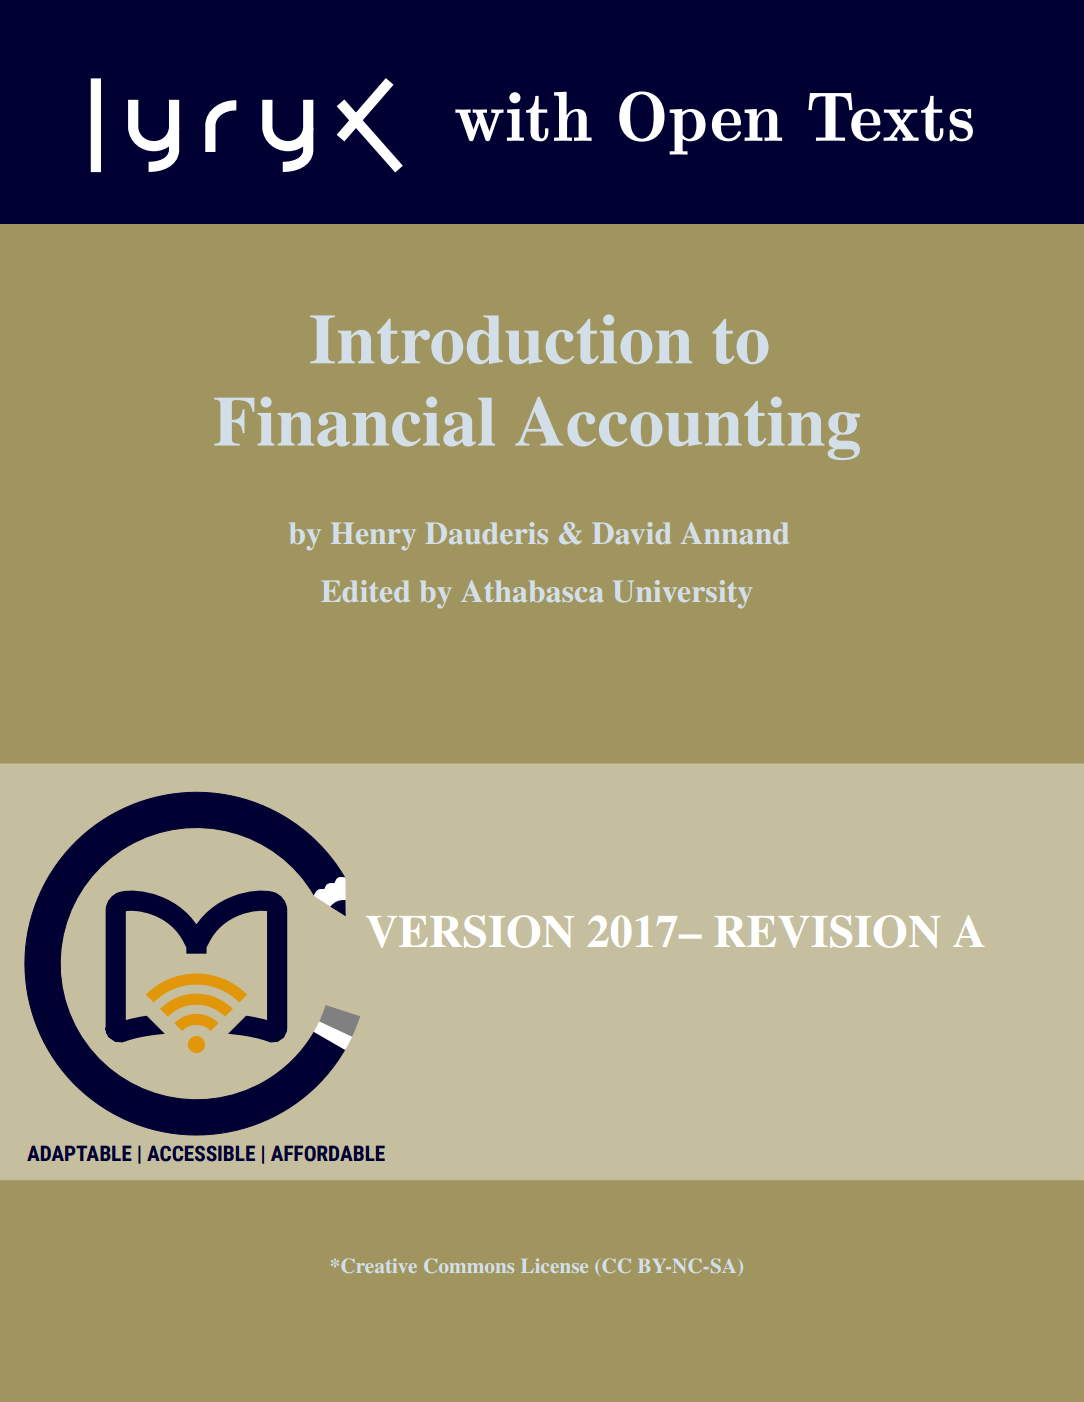 Introduction to Financial Accounting by David Annand